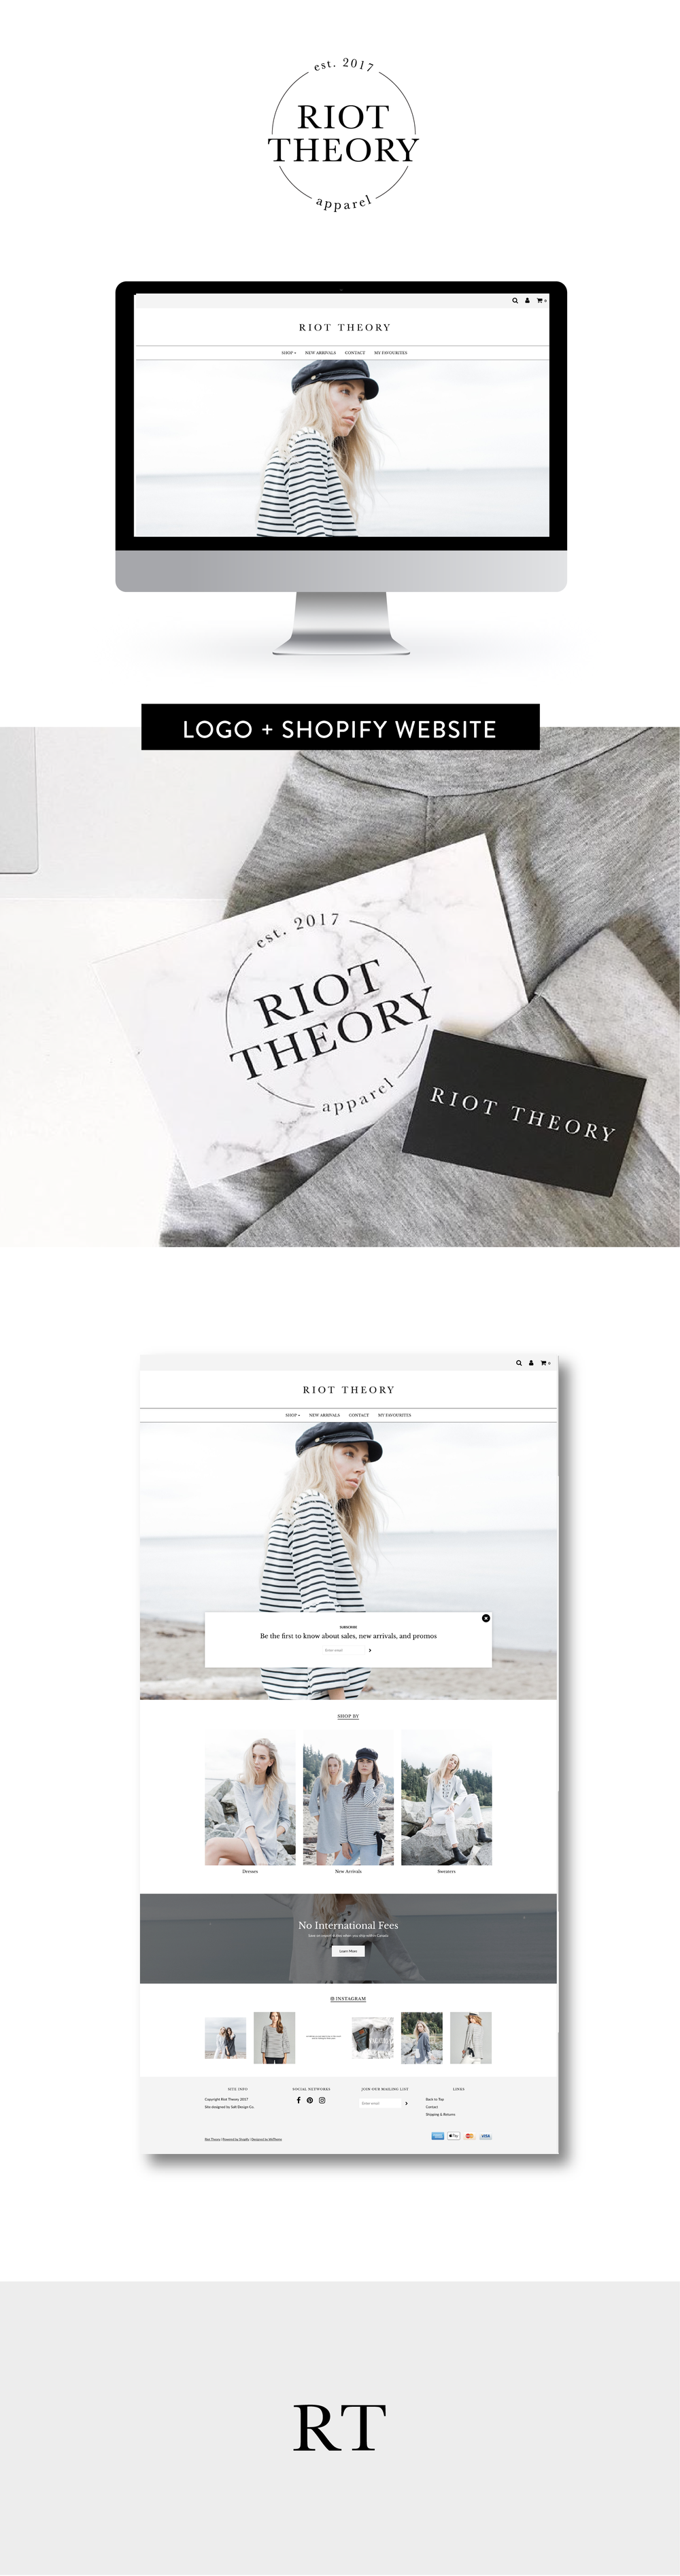 Riot Theory Brand and Shopify Website by Salt Design Co.